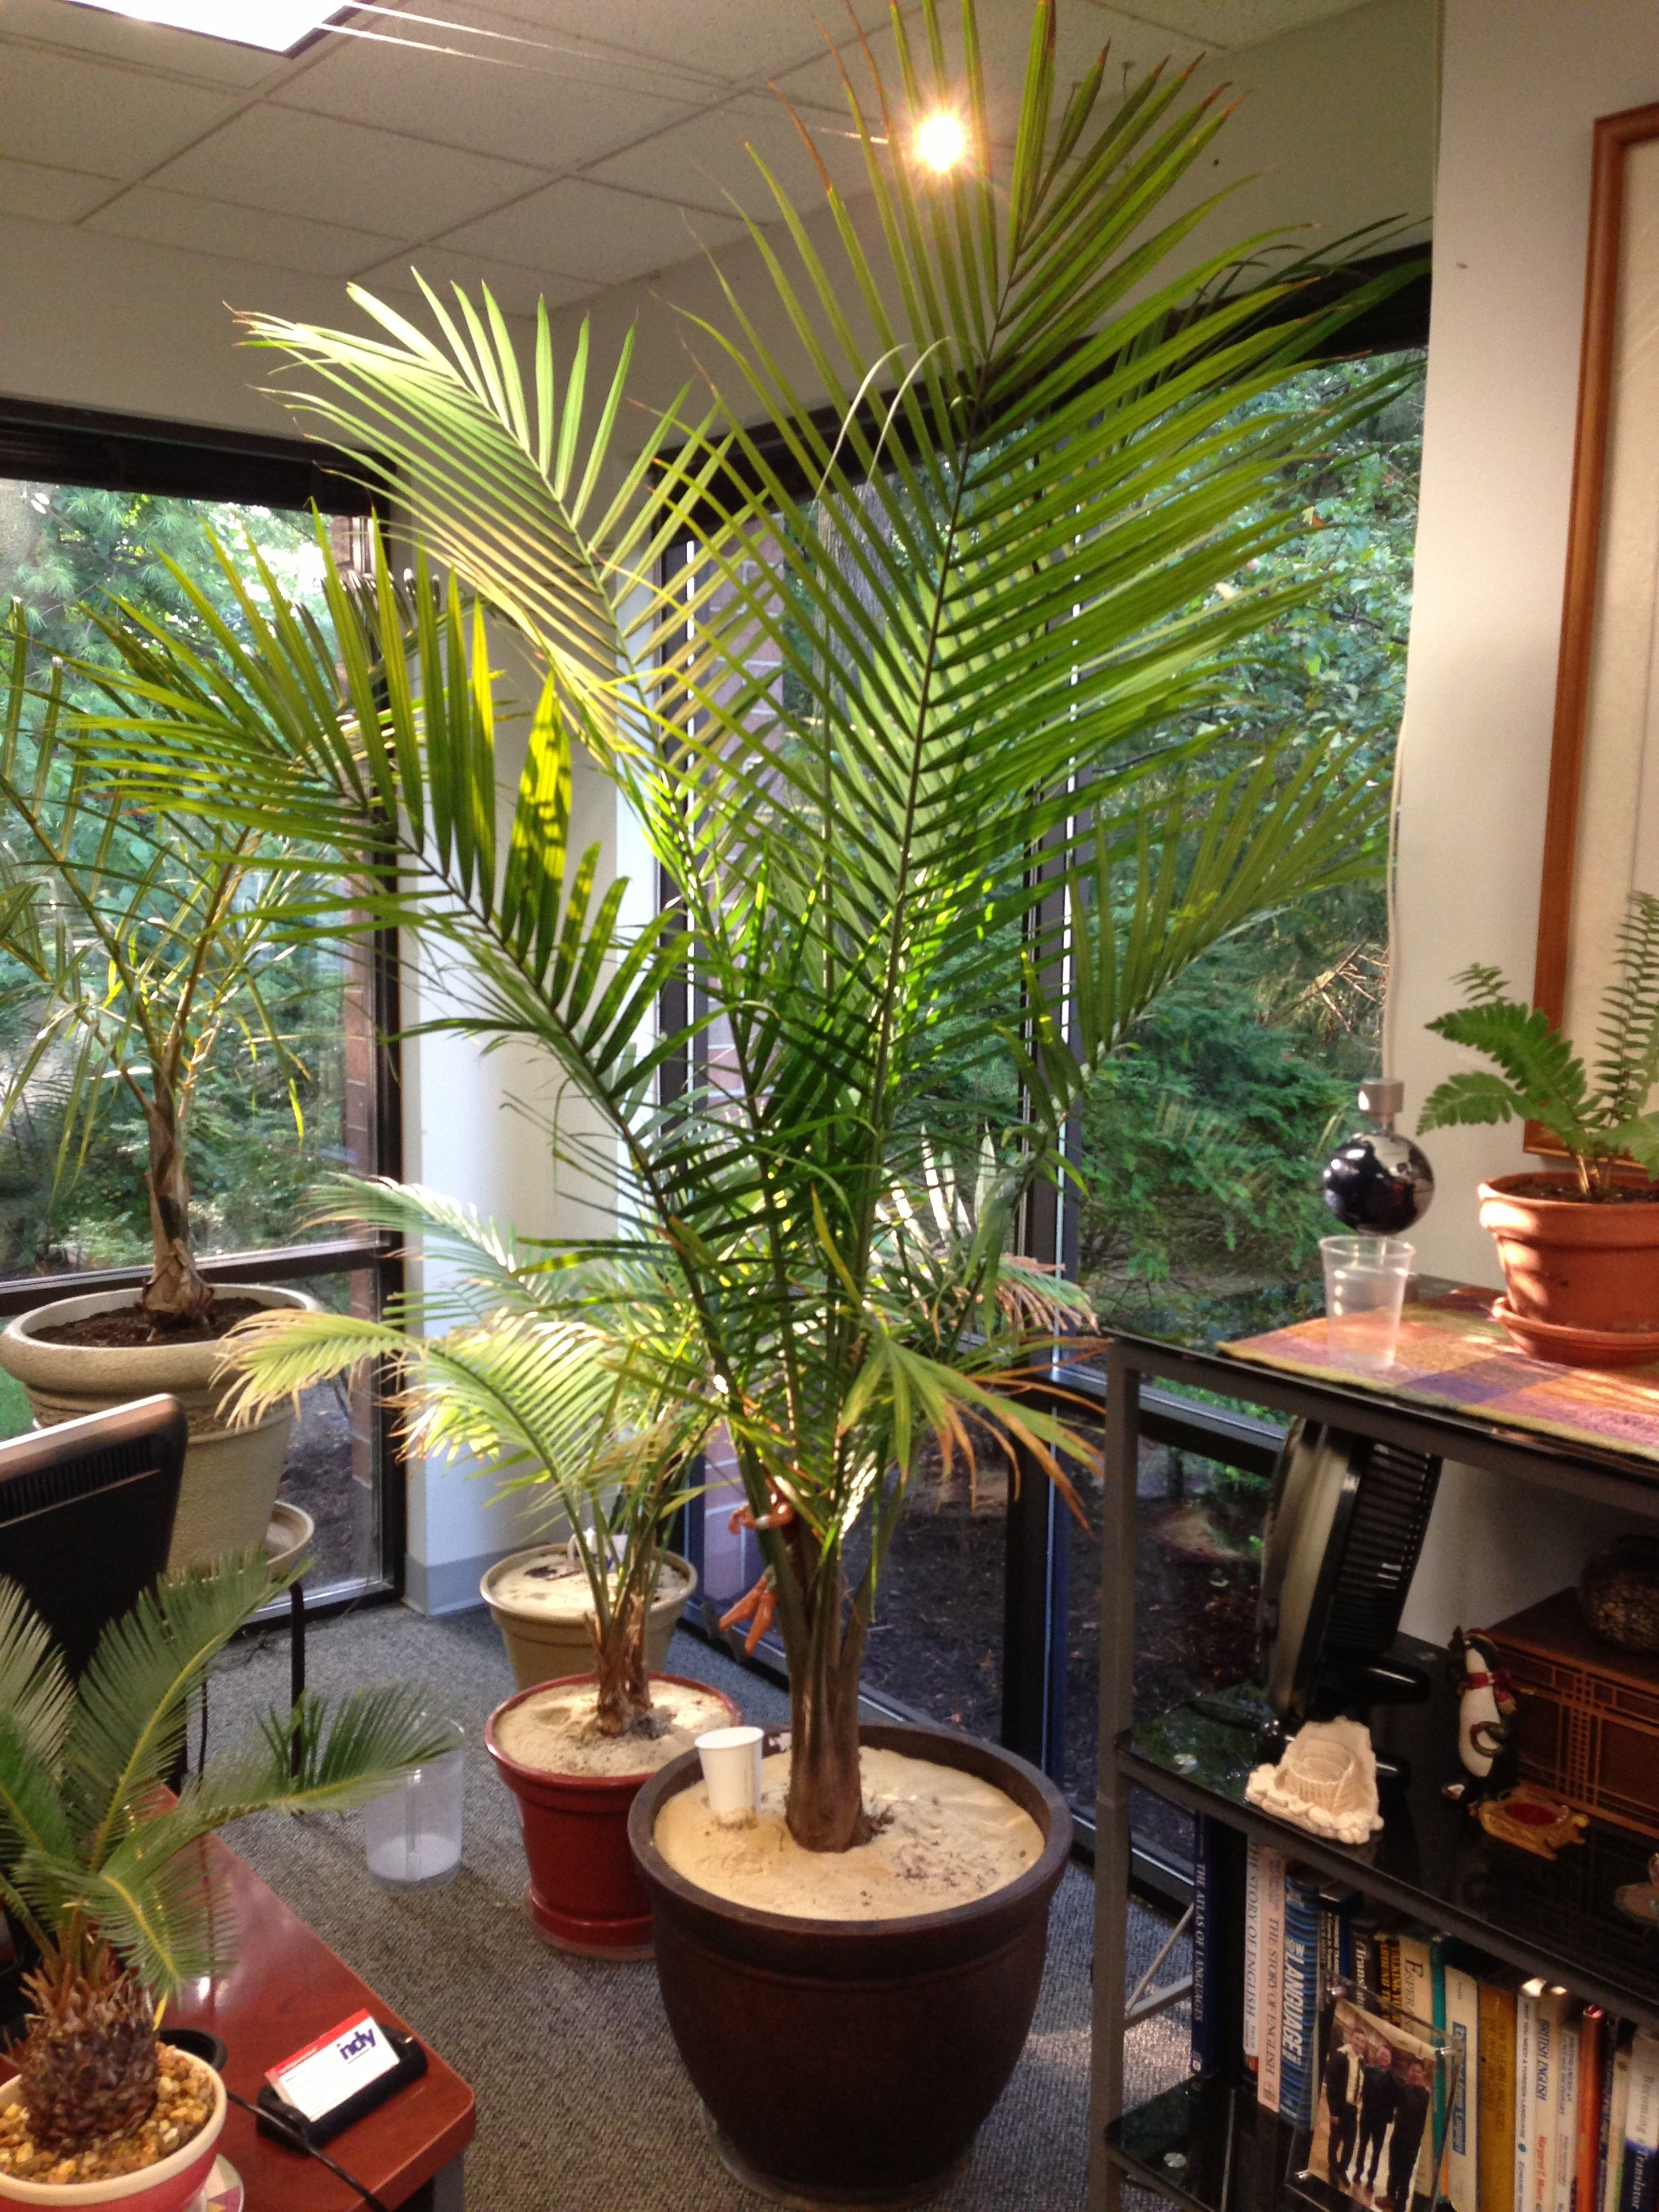 Artificial Areca Palm Tree Potted Plants Artificial Chrysalidocarpus Lutescens Bonsai Synthetic Indoor Coconut Tree Buy Artificial Chrysalidocarpus My Majesty Palm Ravenea Rivularis In My Office It S Almost